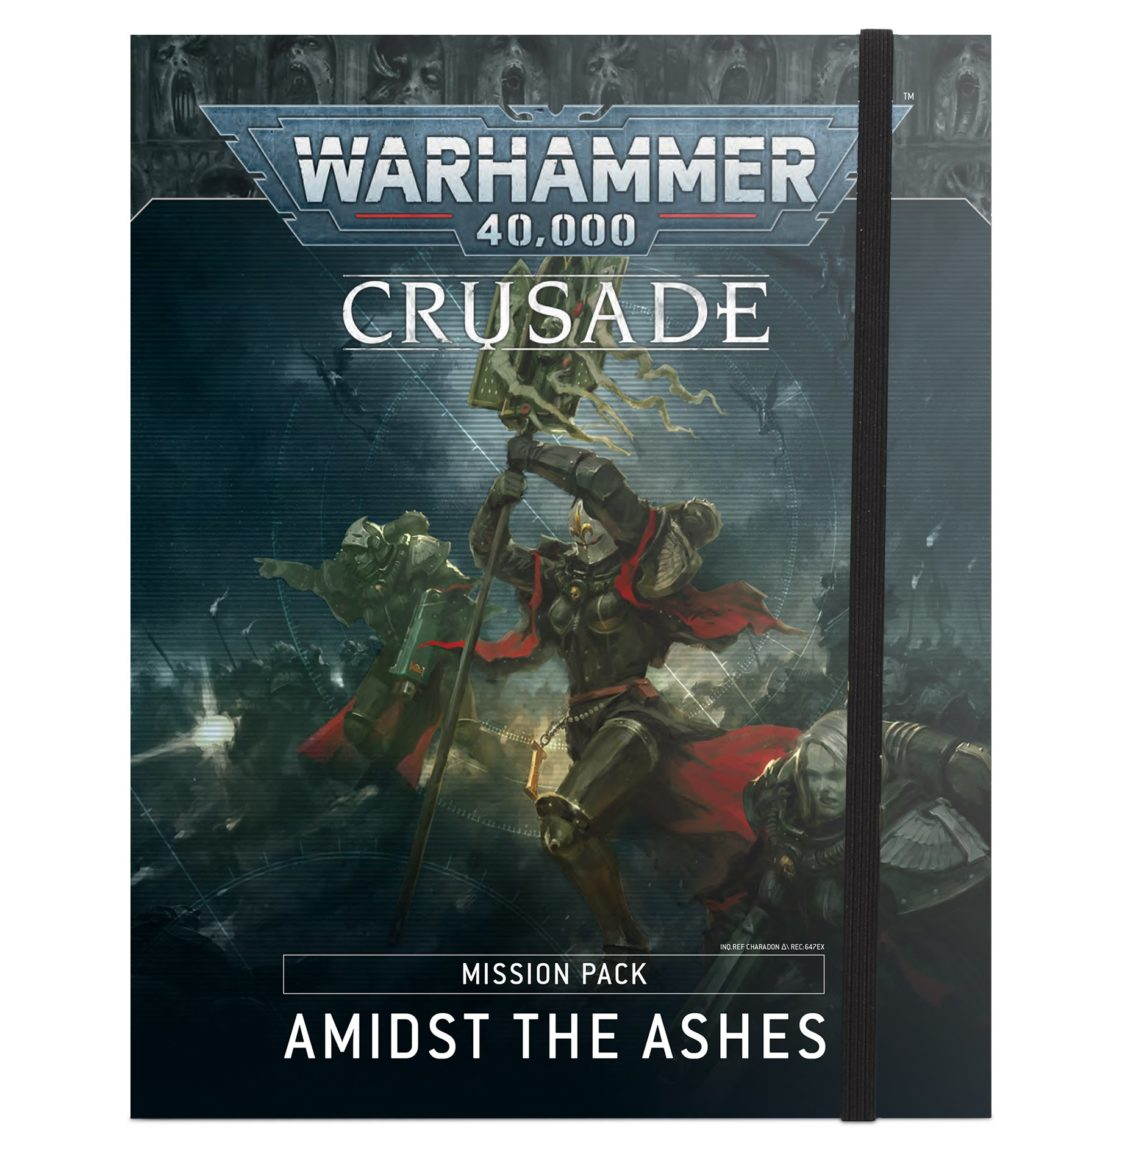 Amidst the Ashes Crusade Mission Pack (English)